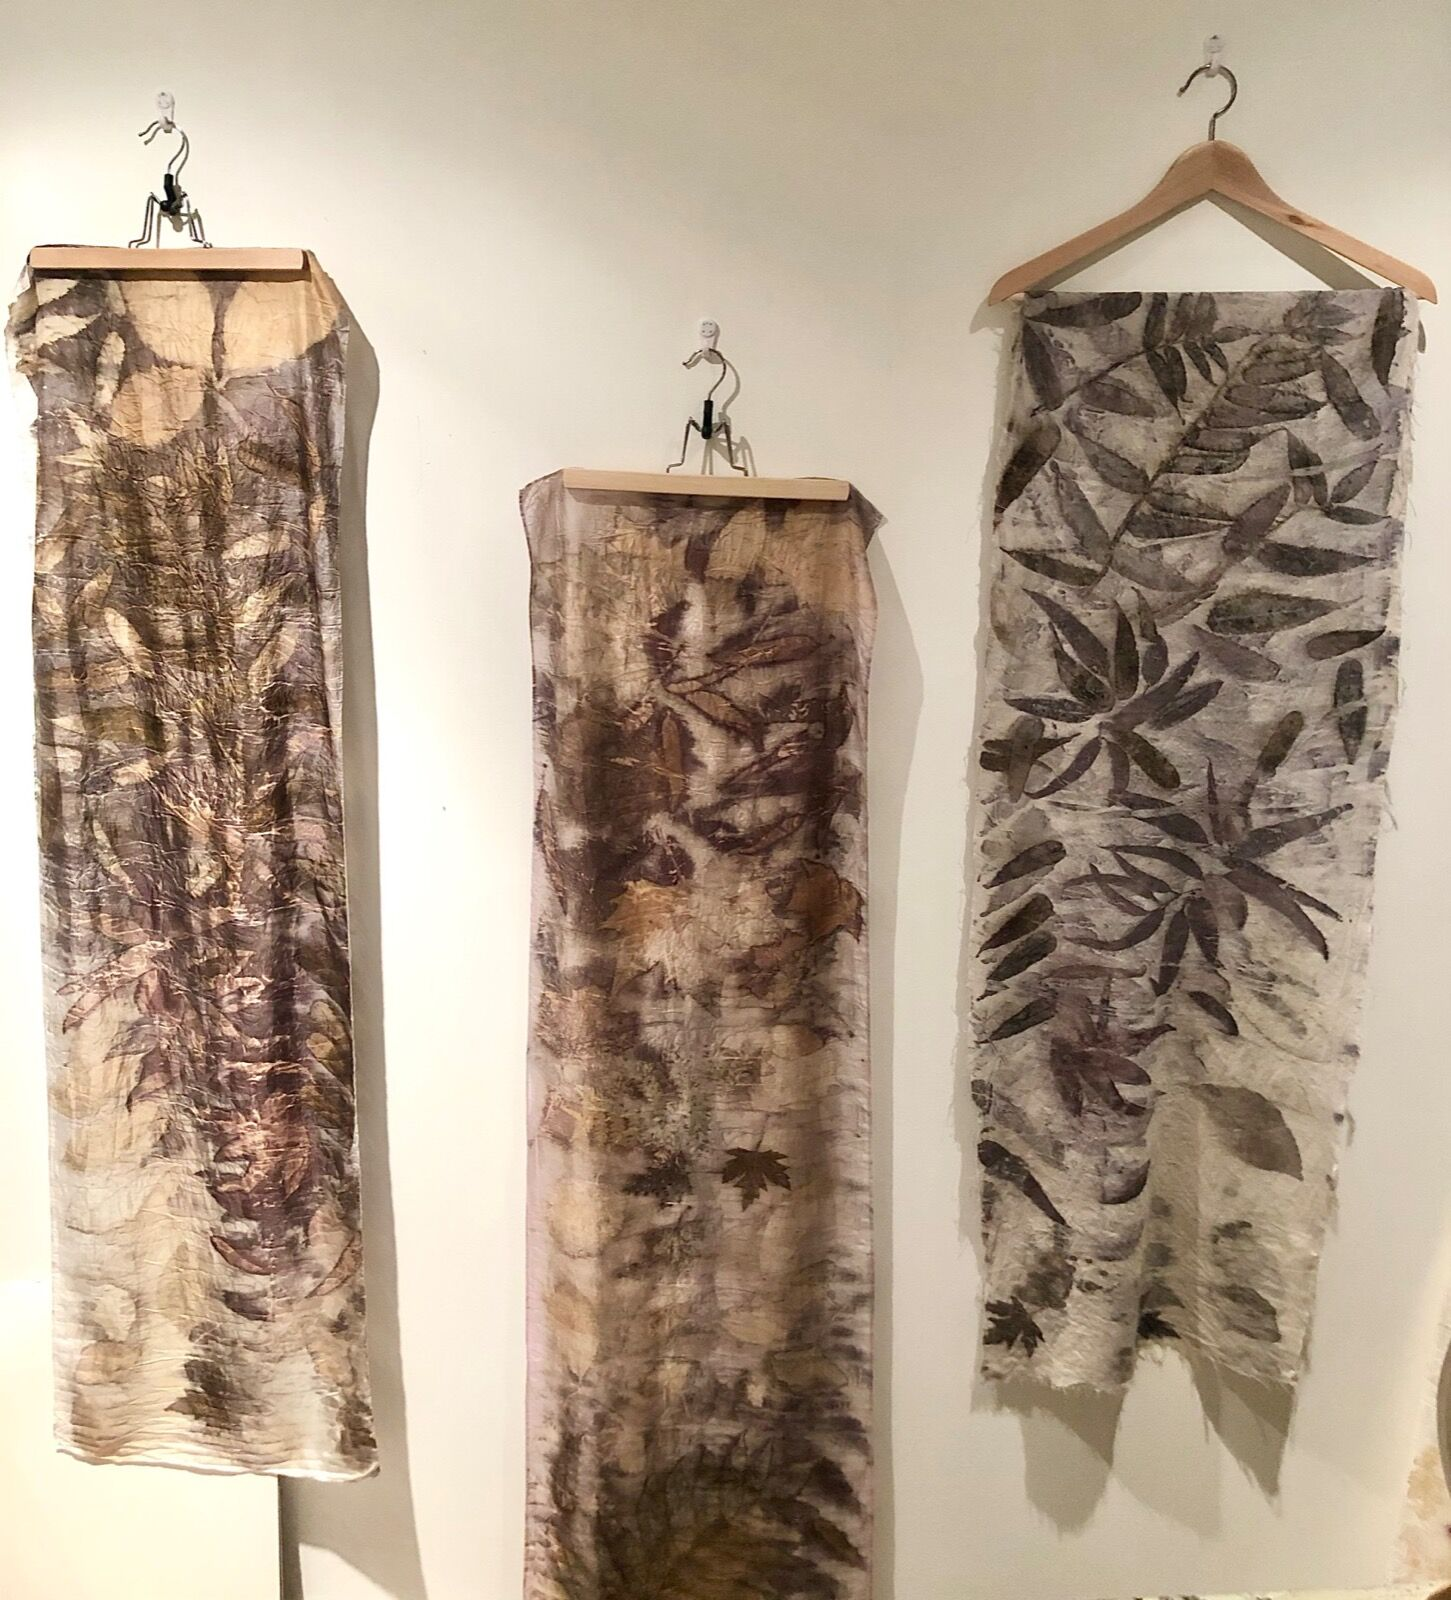 Botanical contact print on silk and calico using the 'bundle and steam' method for natural dye extraction